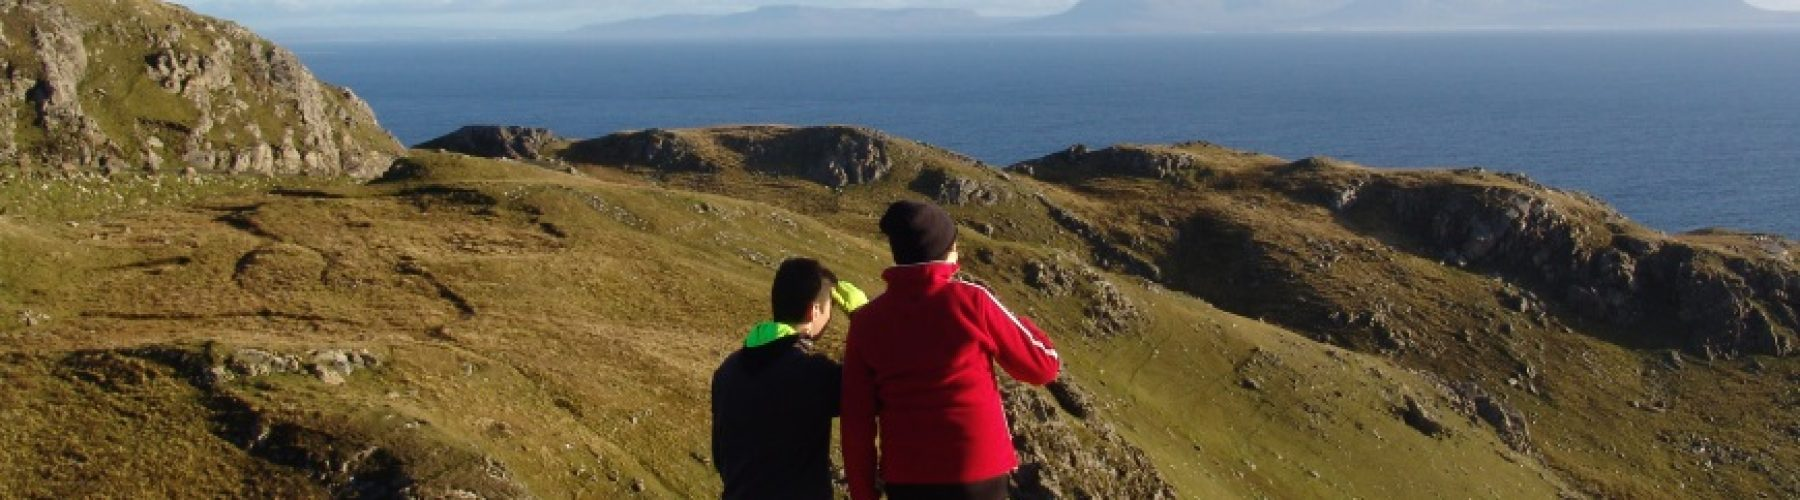 Hiking and Walking self-guided tour at Sliabh Liag, Donegal.